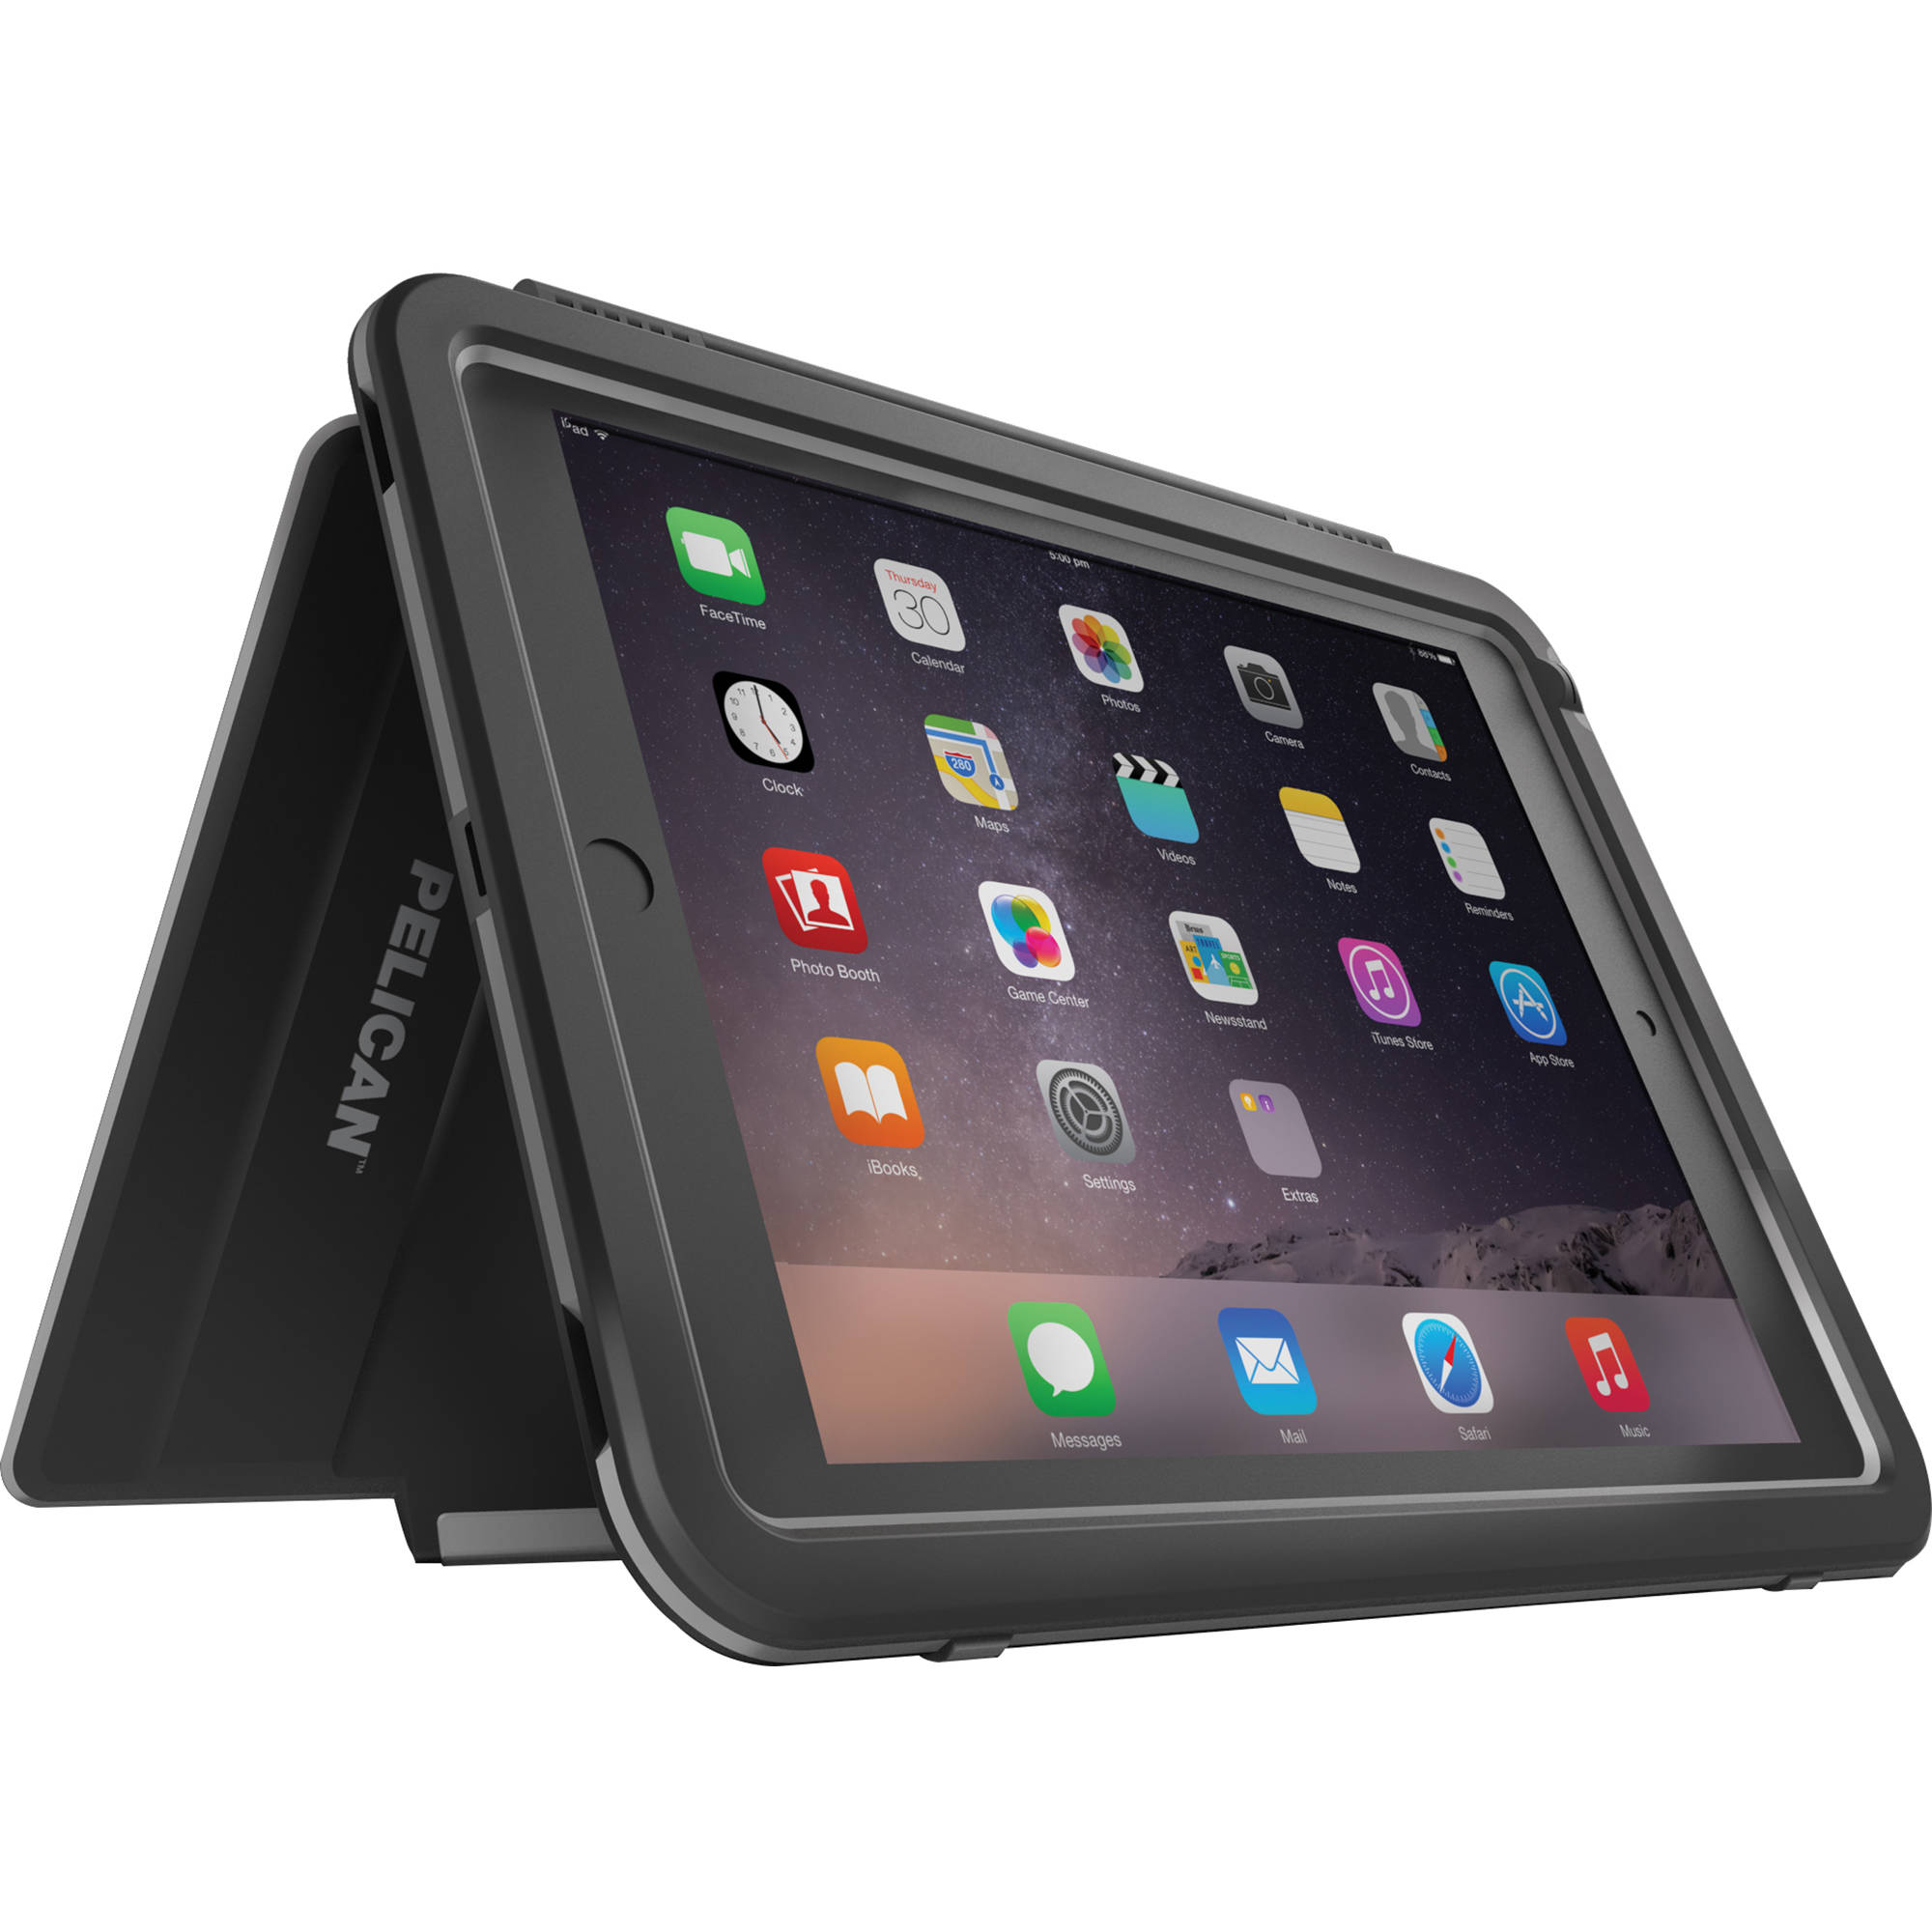 pelican progear vault tablet case for ipad mini ce12080 m30a blkcase for ipad mini 1,2,3 (black) ipod, ipad, or iphone not included